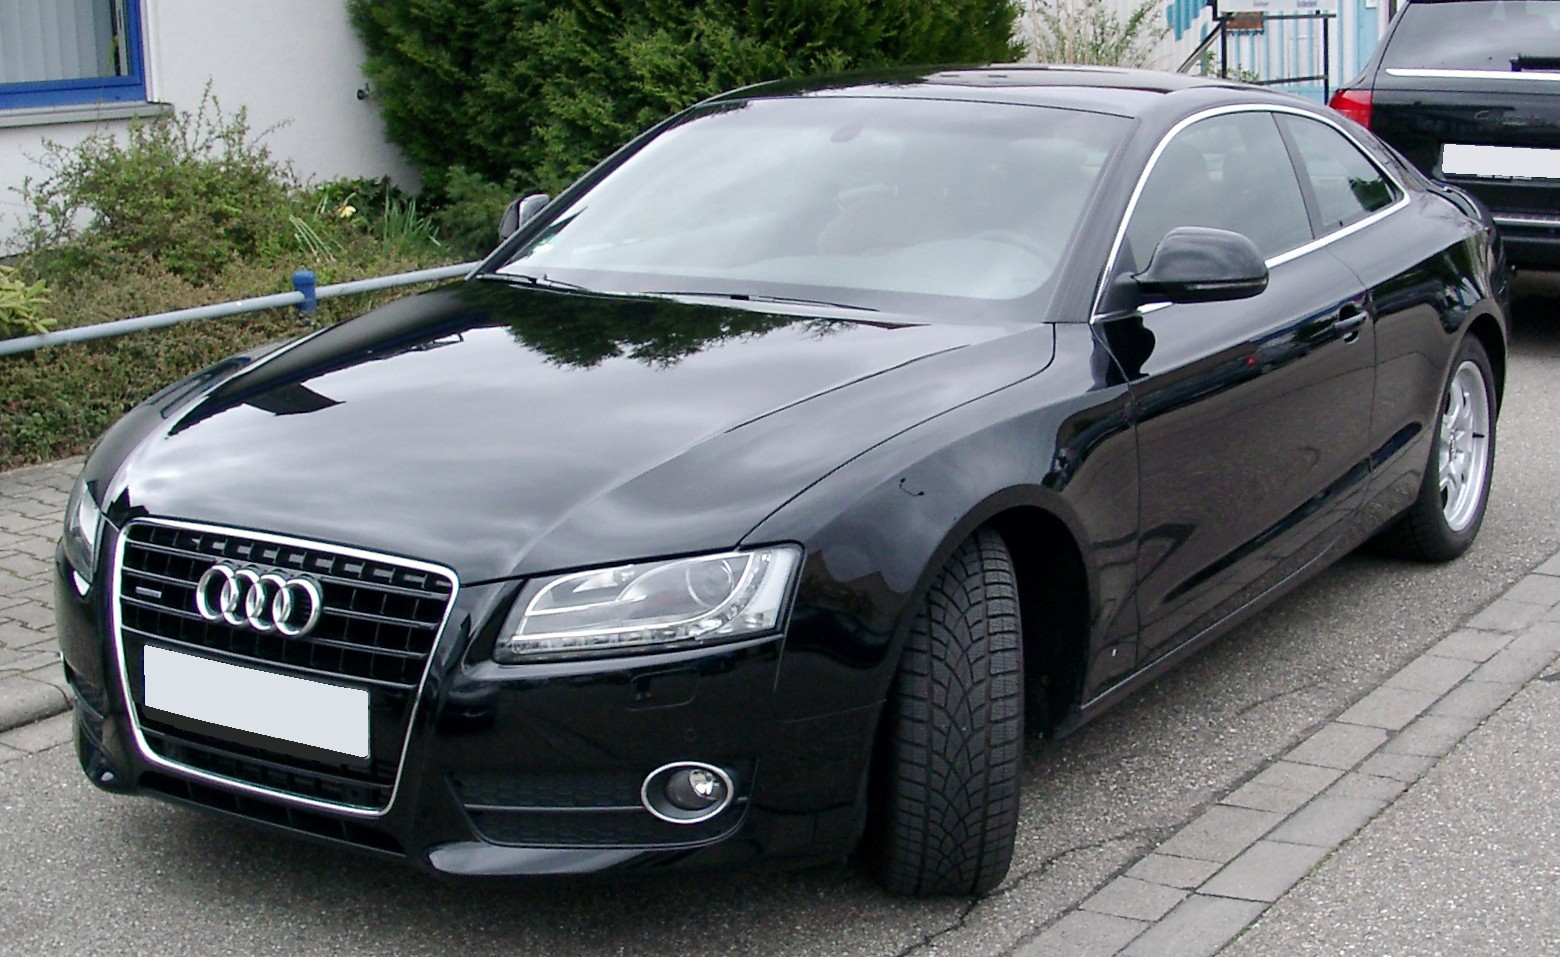 Audi A 3 2010 >> File:Audi A5 front 20080414.jpg - Wikimedia Commons